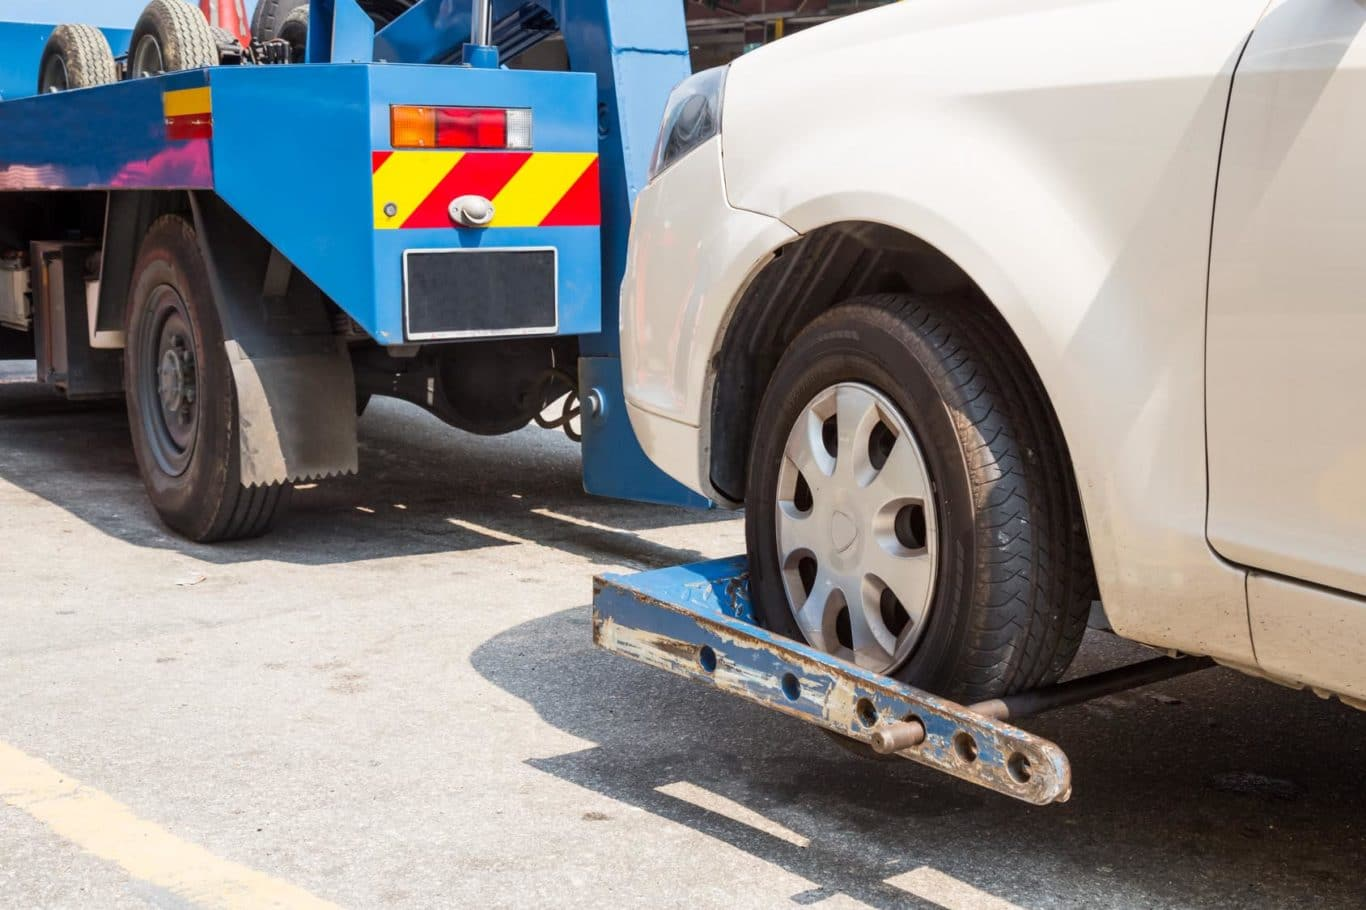 Tallanstown expert Towing And Recovery Dublin services